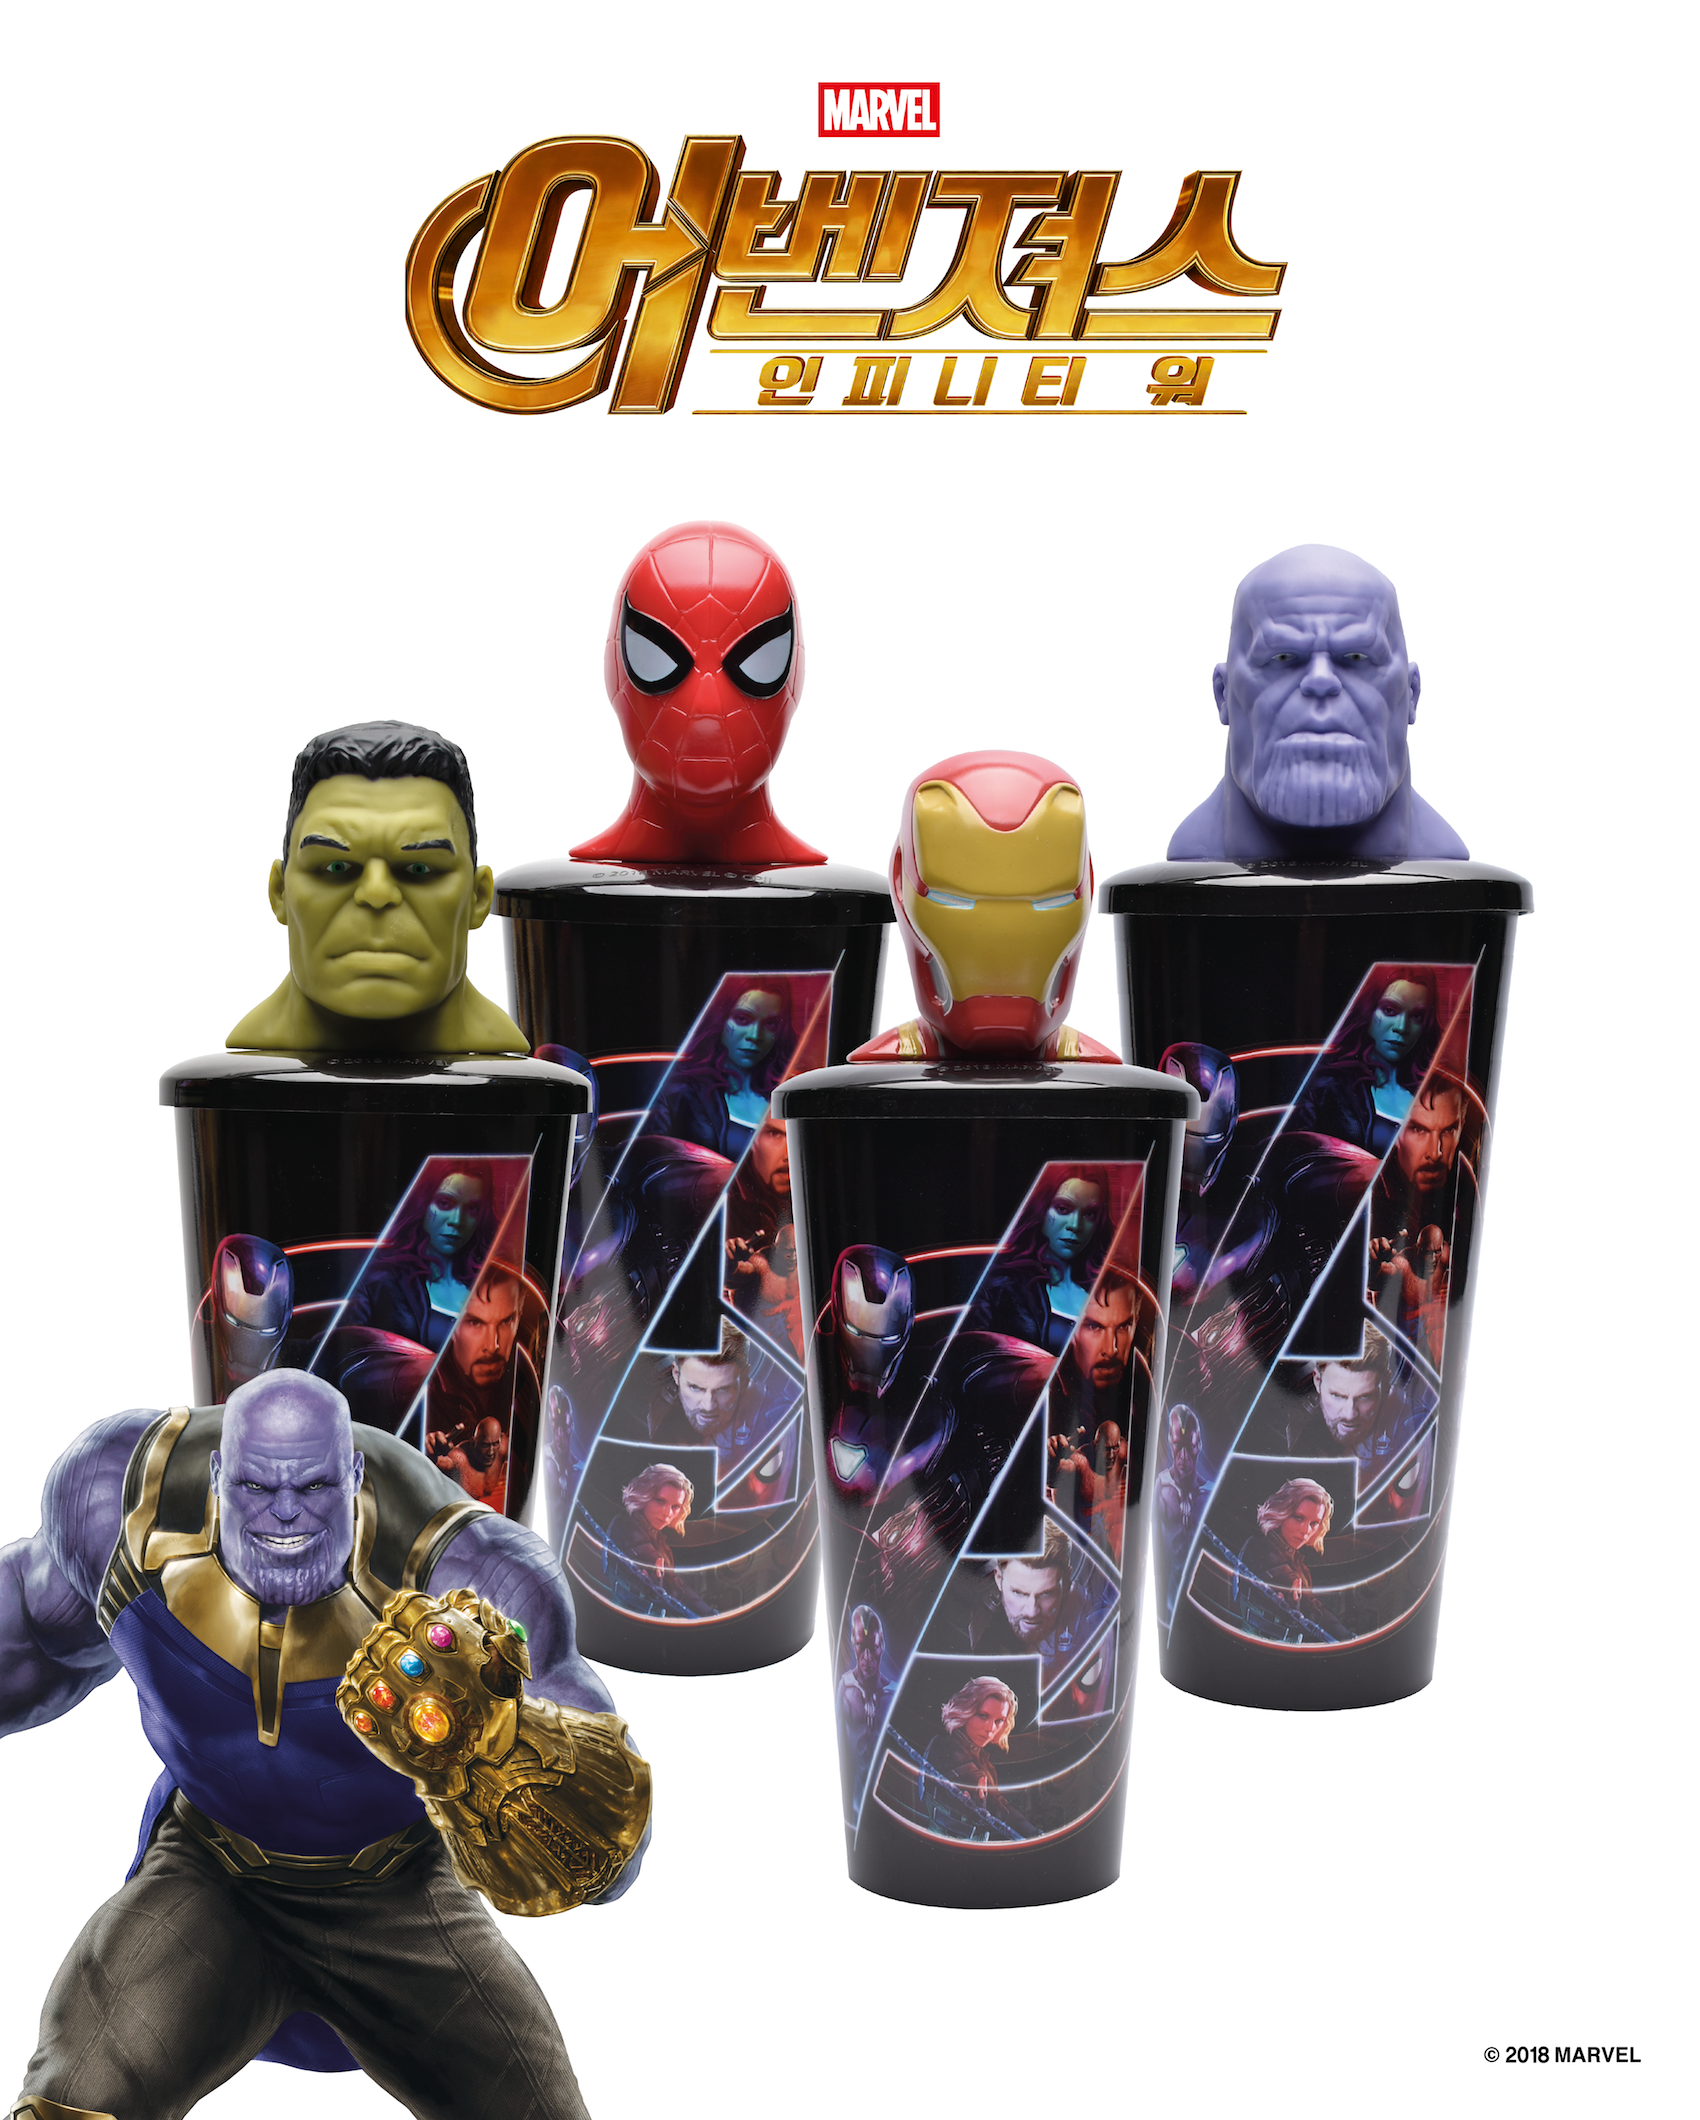 'Avengers: Infinity War, 2018' - TOY CUP  - LOTTE CINEMA